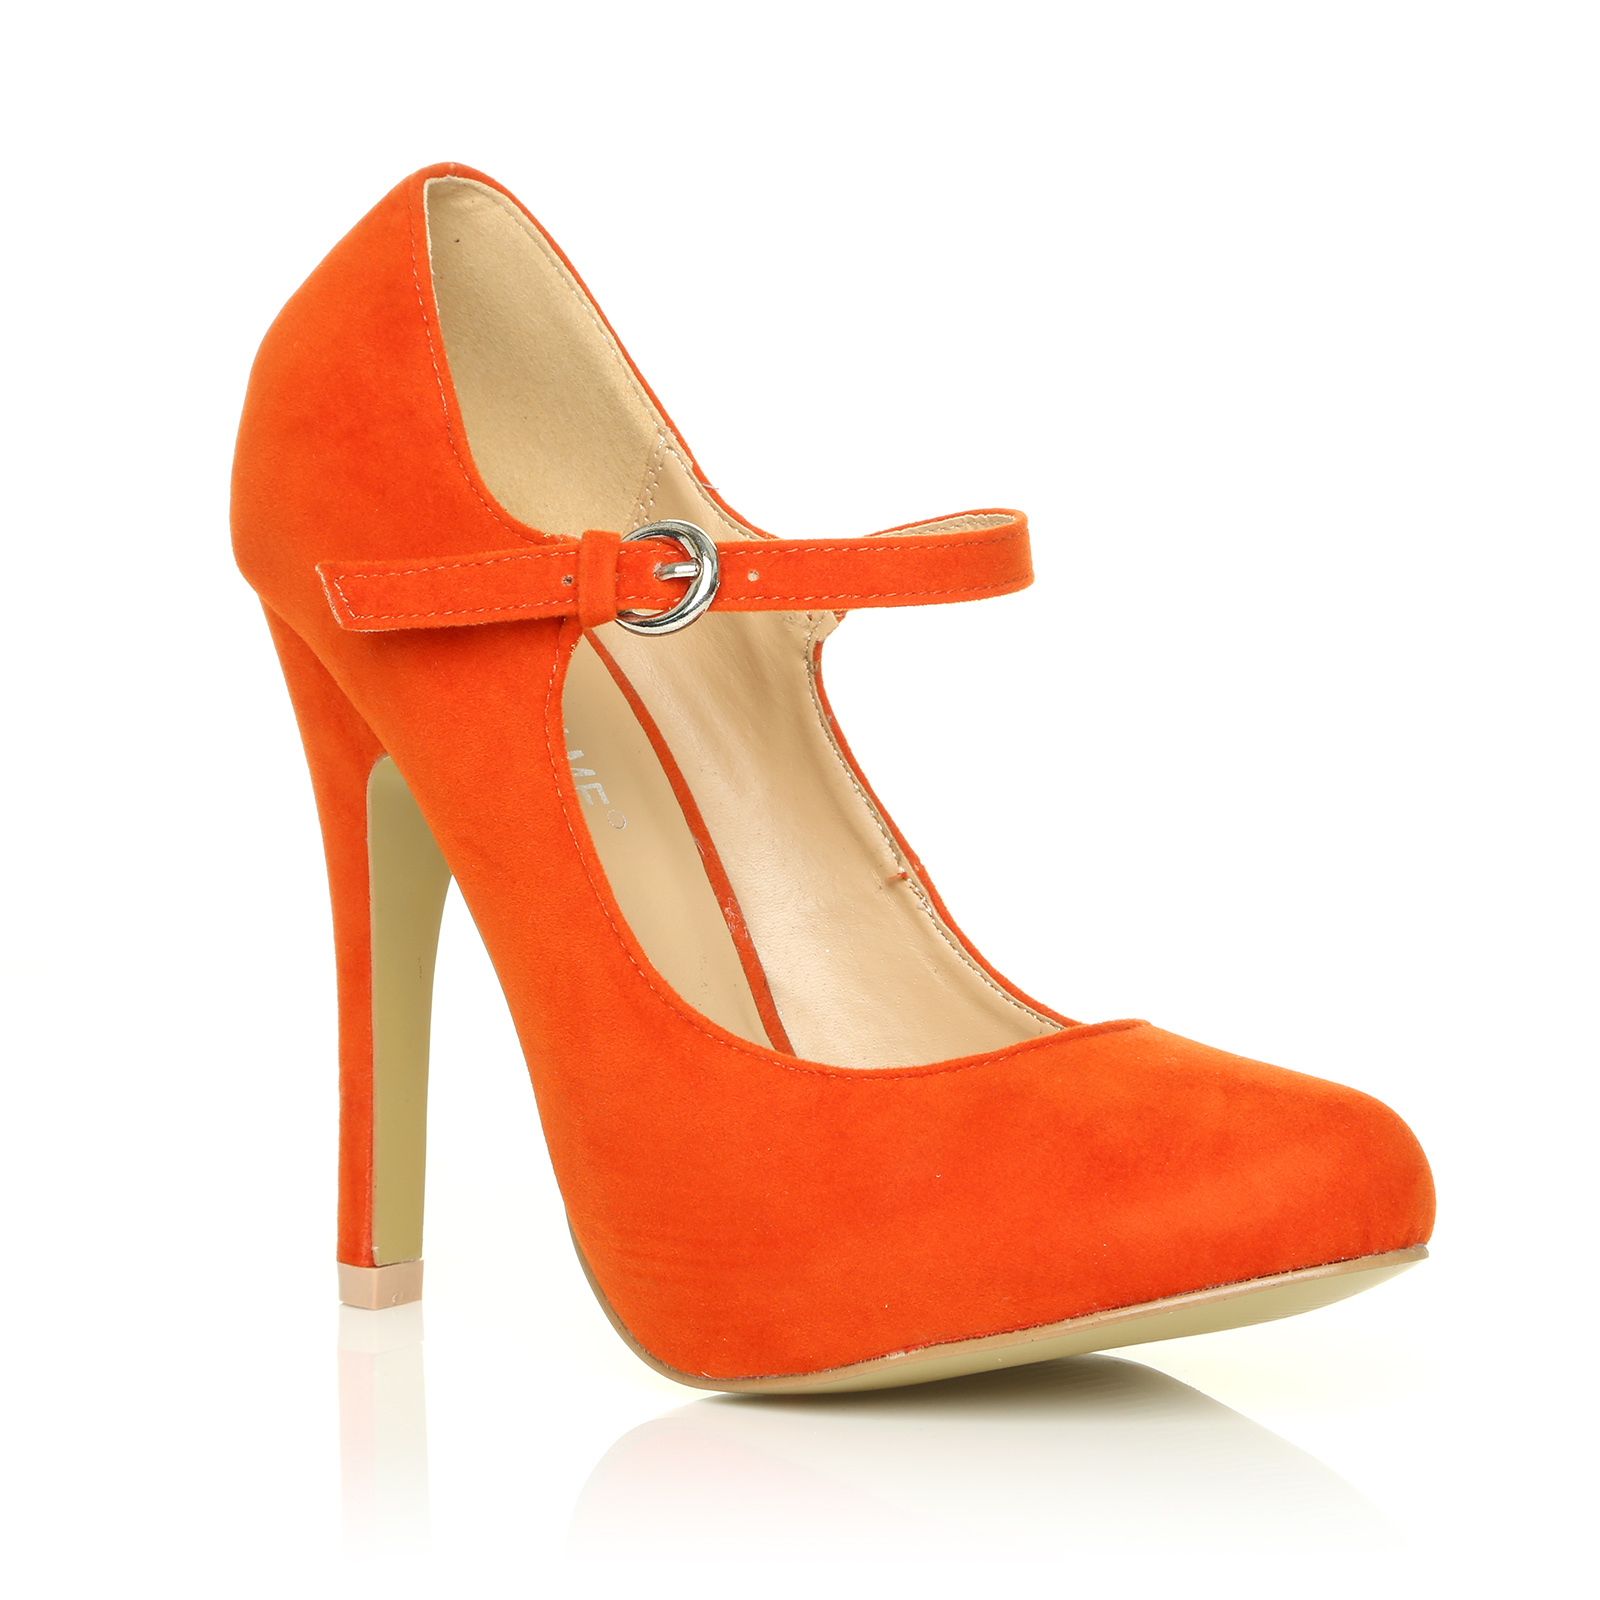 LADIES-WOMEN-MARY-JANE-STYLE-HIGH-STILETTO-HEEL-SUEDE-PATENT-SHOES-SIZE-3-8-NEW